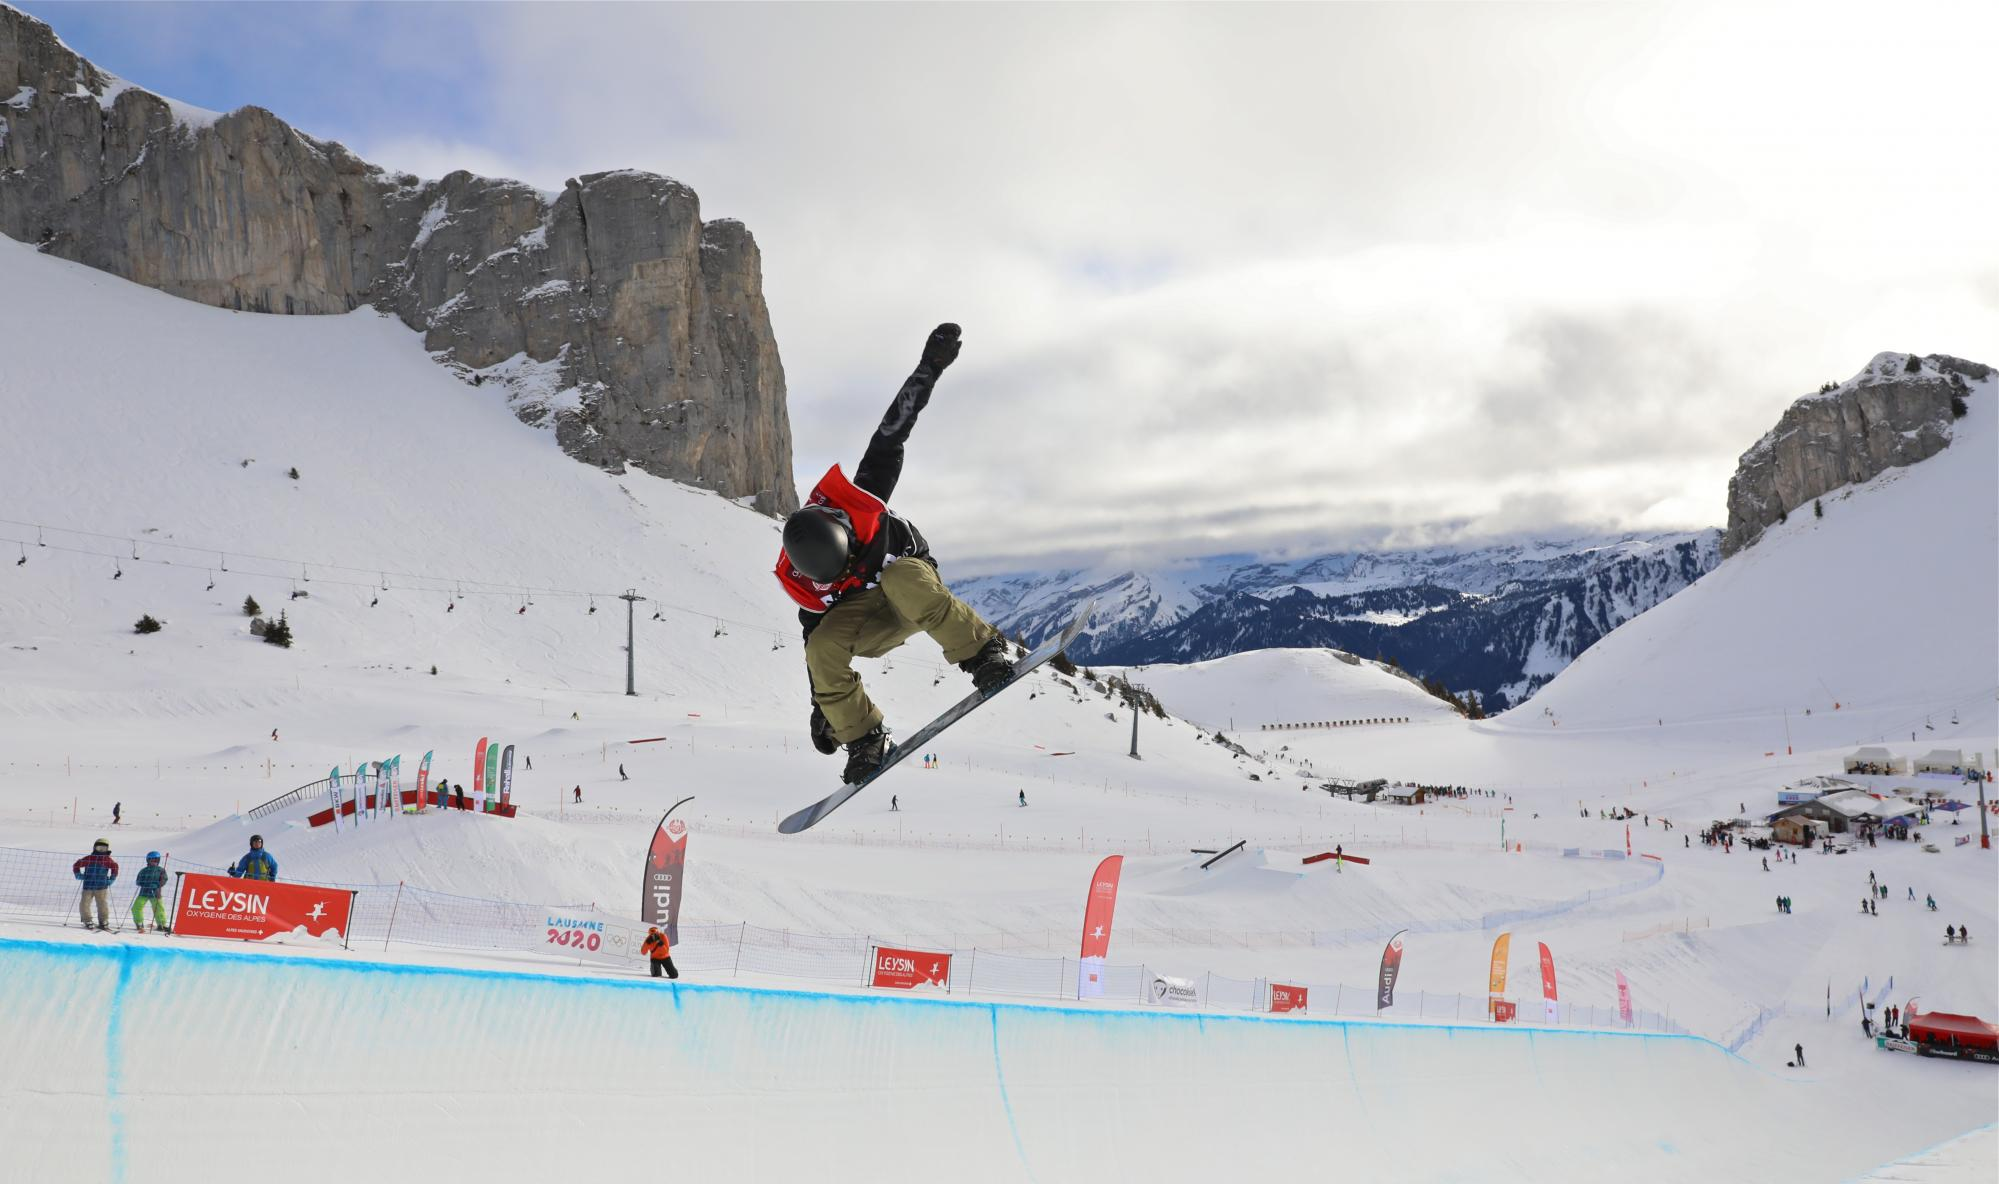 Freestyle Skiing At The 2020 Olympic Winter Games.Les Joj 2020 A Leysin Aigle Leysin Les Mosses